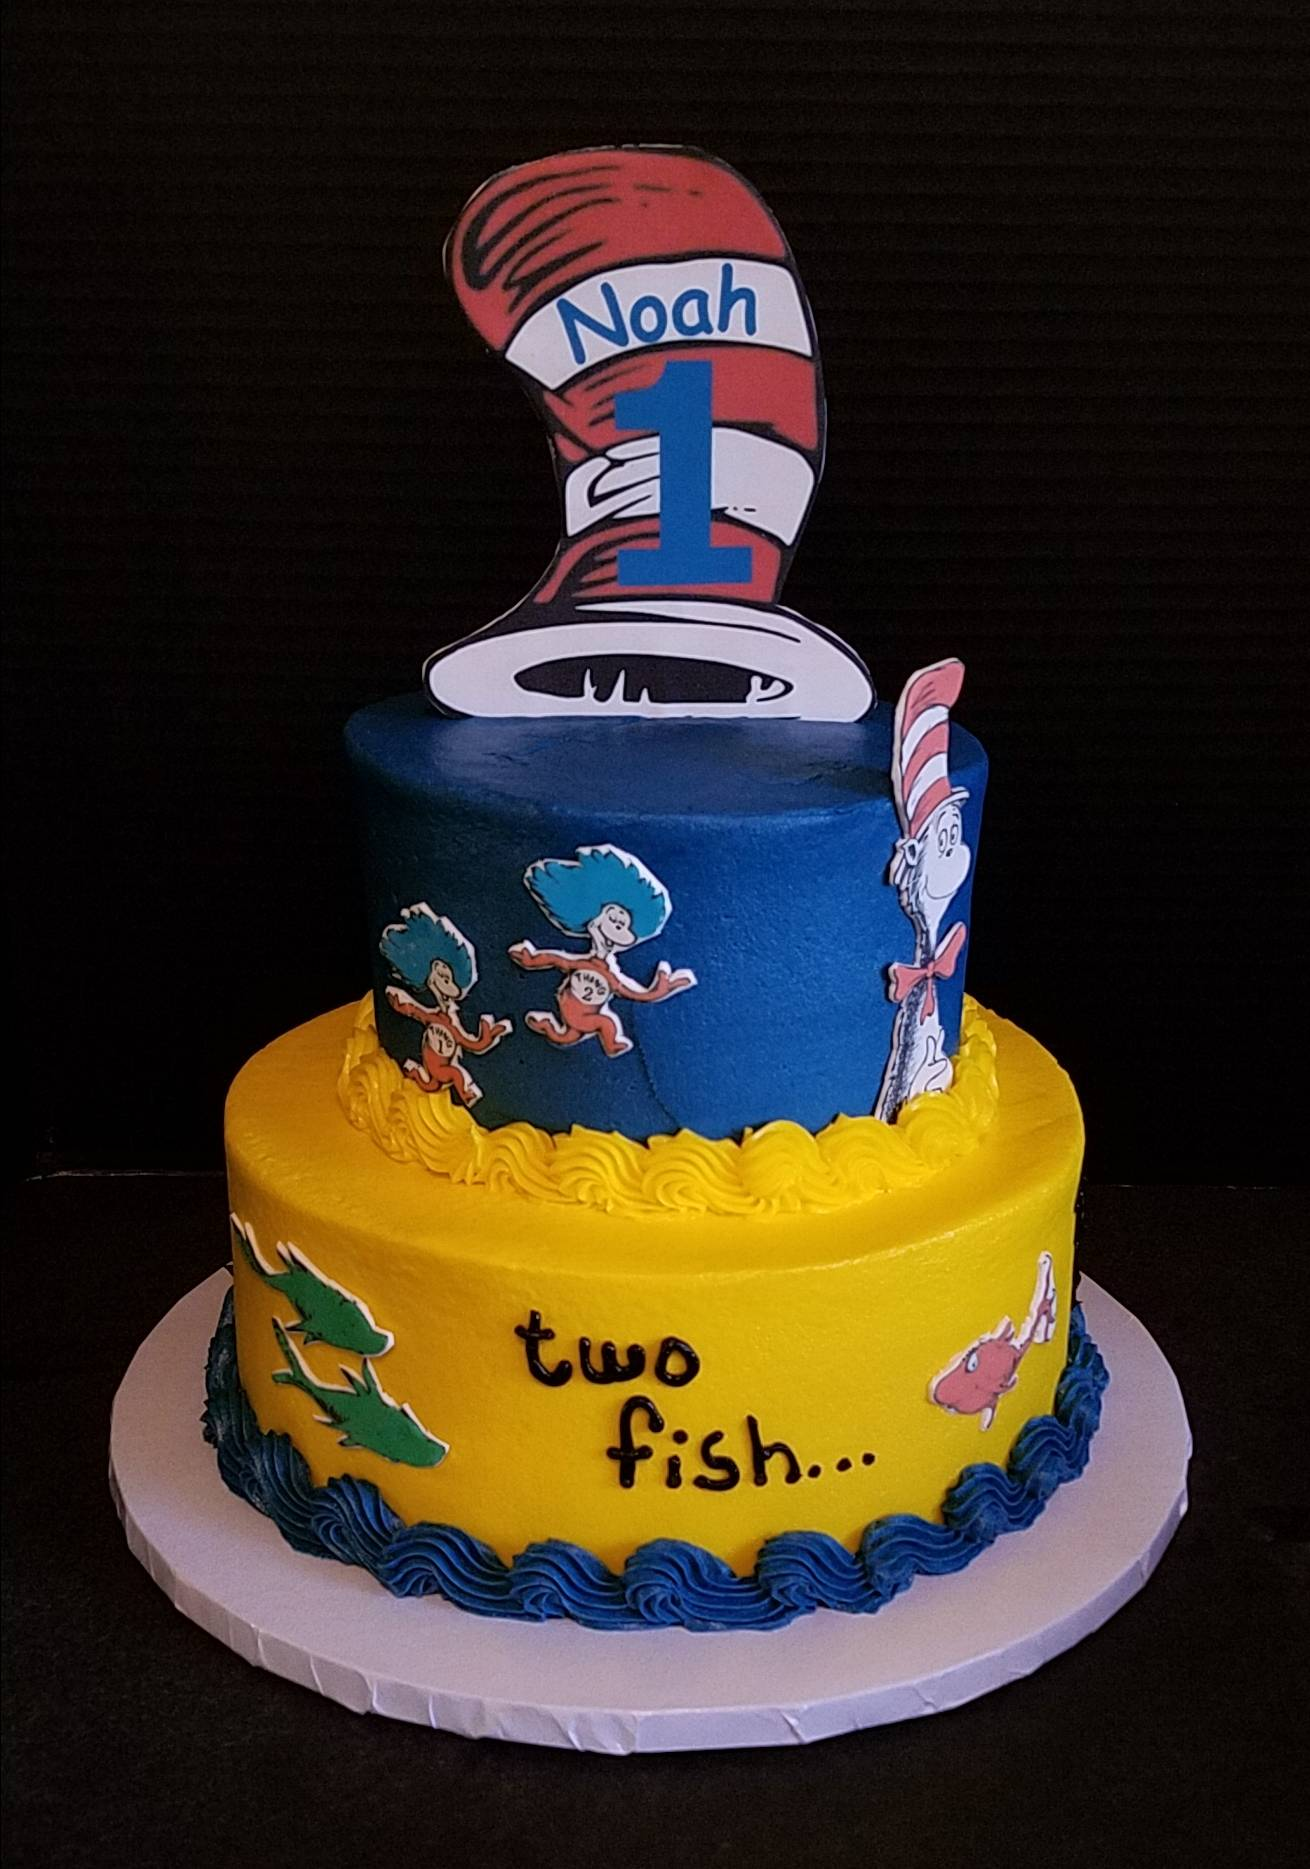 Dr. Seuss, One fish two fish red fish blue fish